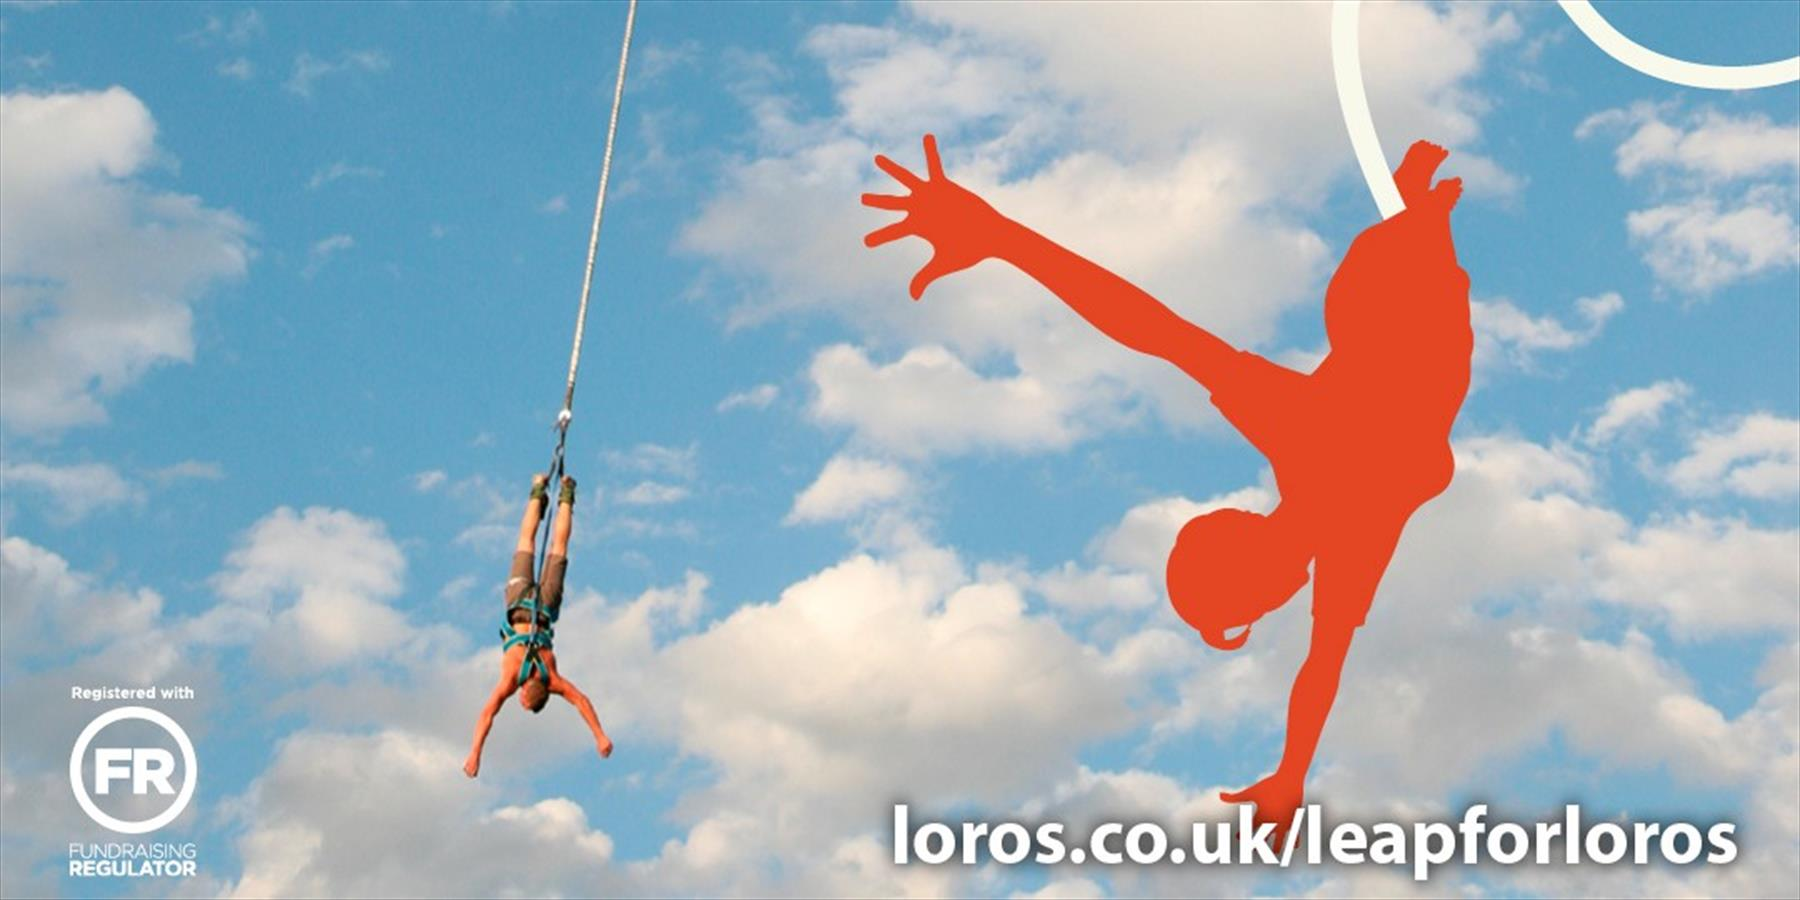 Leap for LOROS